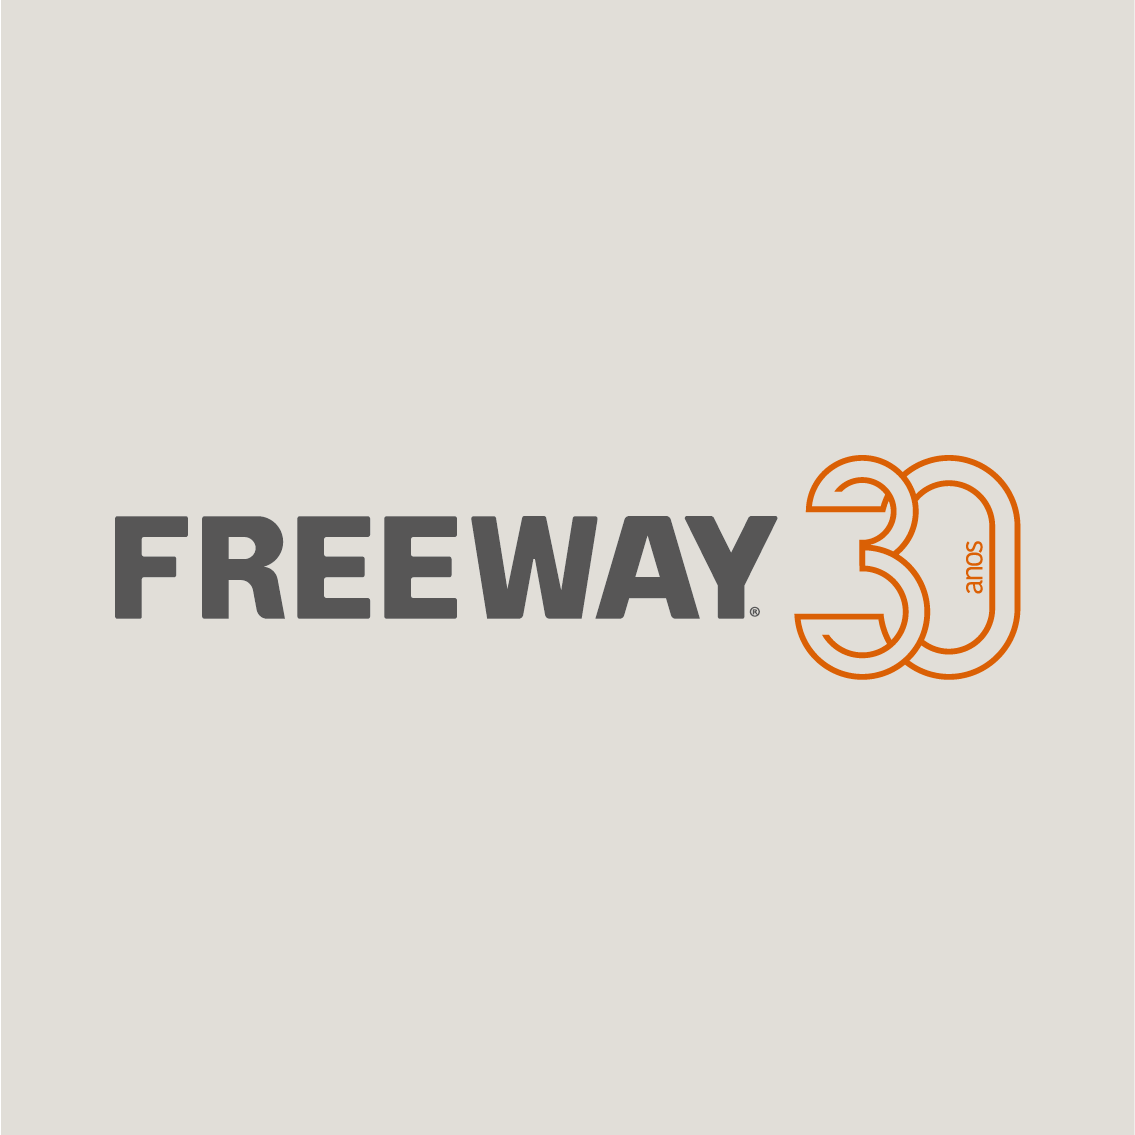 freeway30logo